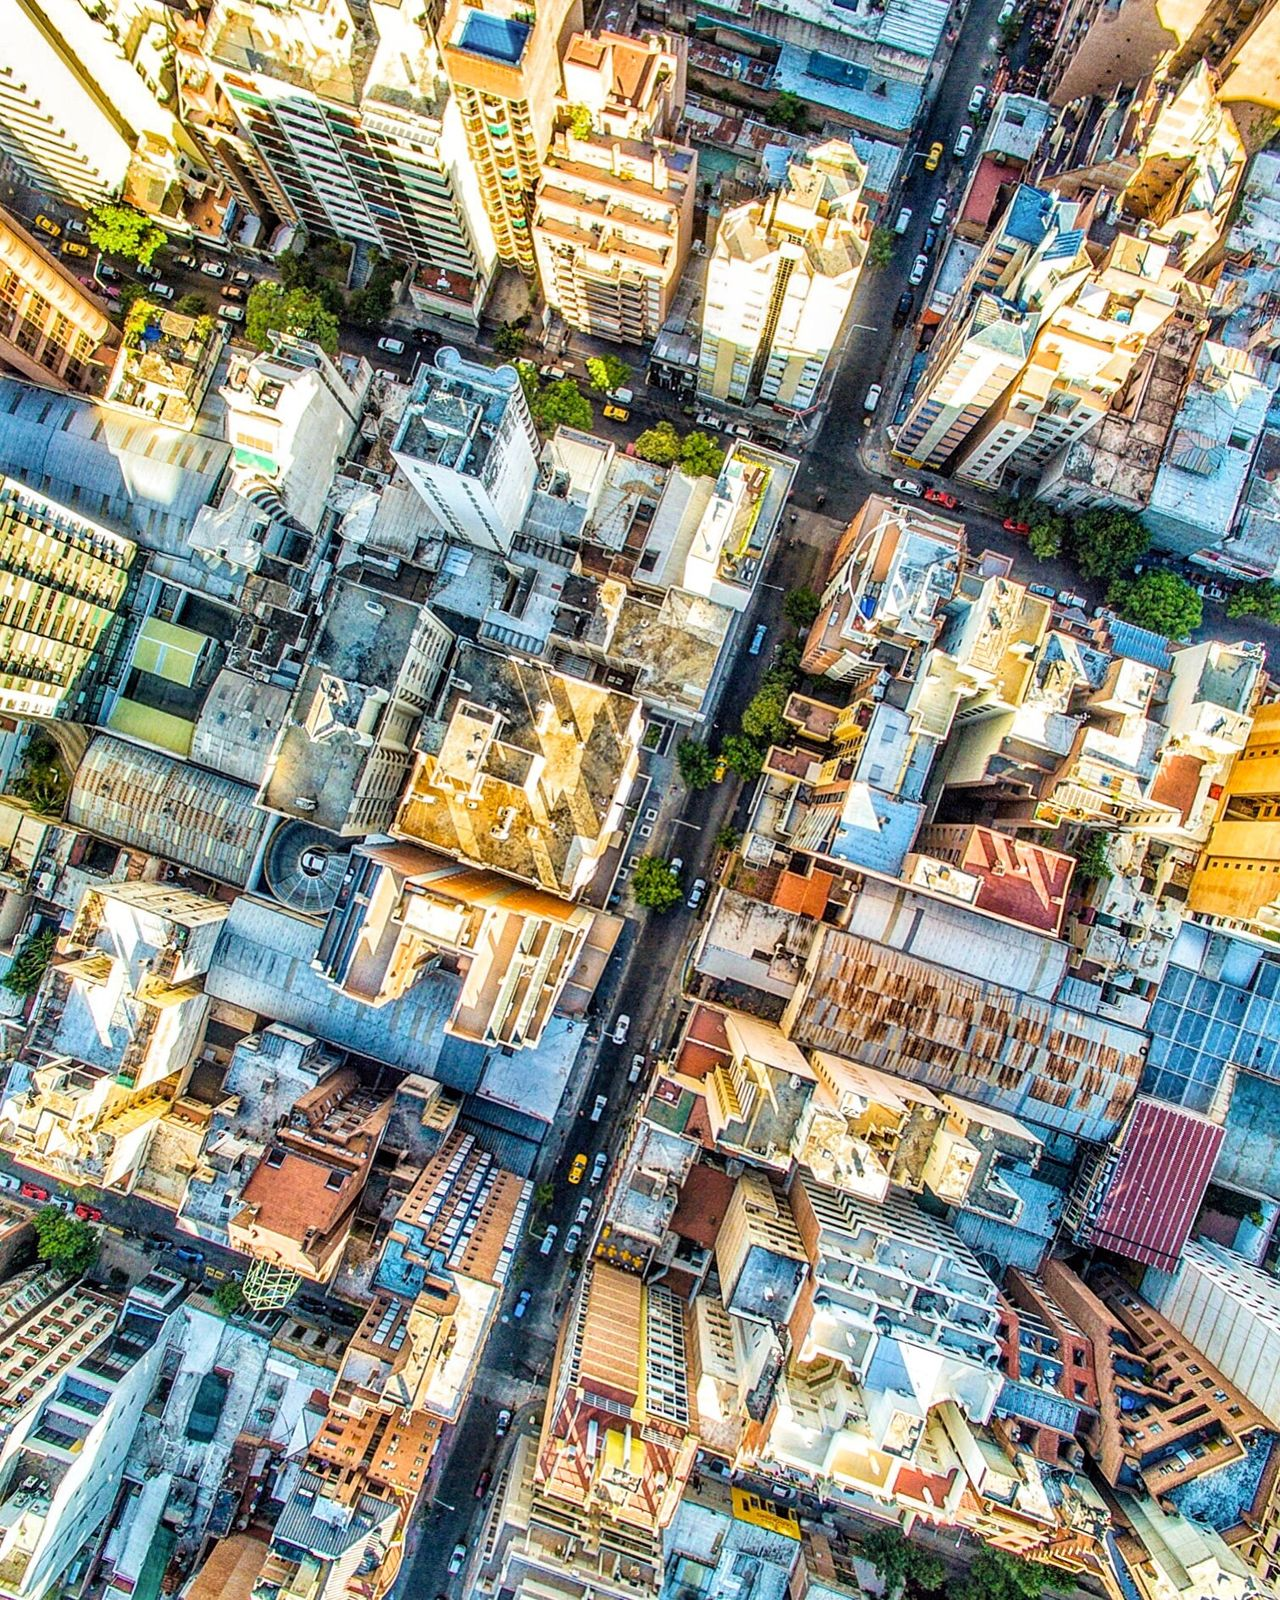 City Cityscape Architecture City Life Aerial View Travel Destinations Street Building Exterior Skyscraper Retail  Outdoors Urban Skyline Illuminated Modern No People Day Tilt-shift Advertisement Posters Neighborhood Map